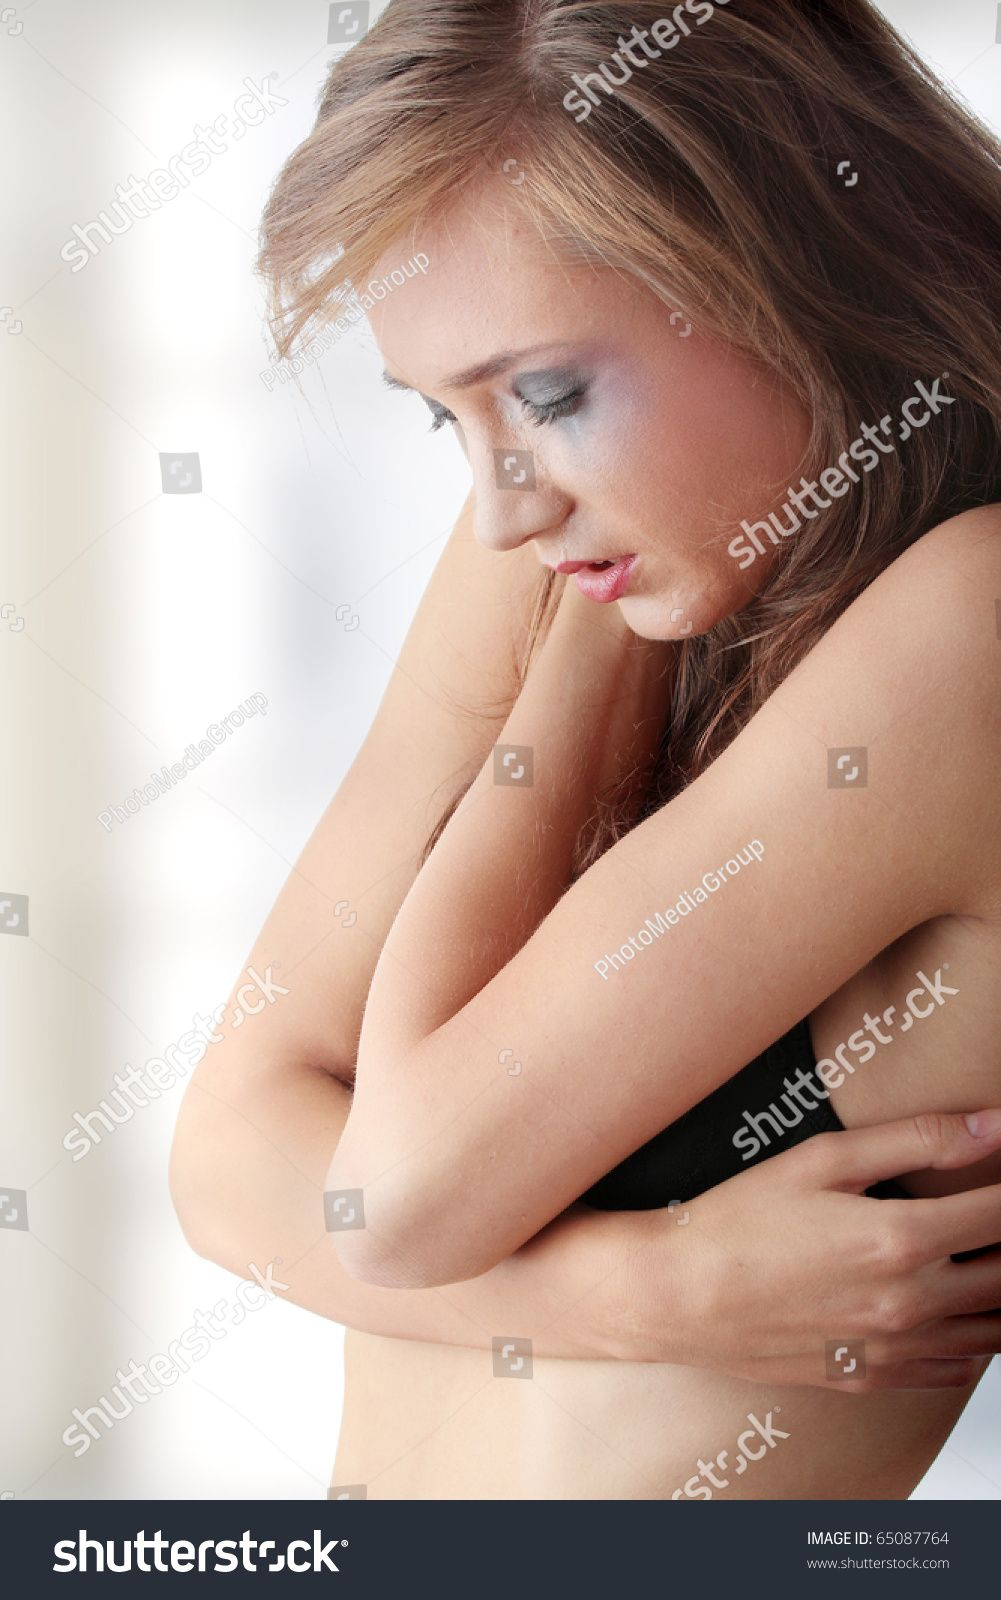 Emotional portrait of abused, crying, beautiful, young ,caucasian woman in underwear - violence concept #Sponsored , #Affiliate, #crying#beautiful#abused#Emotional